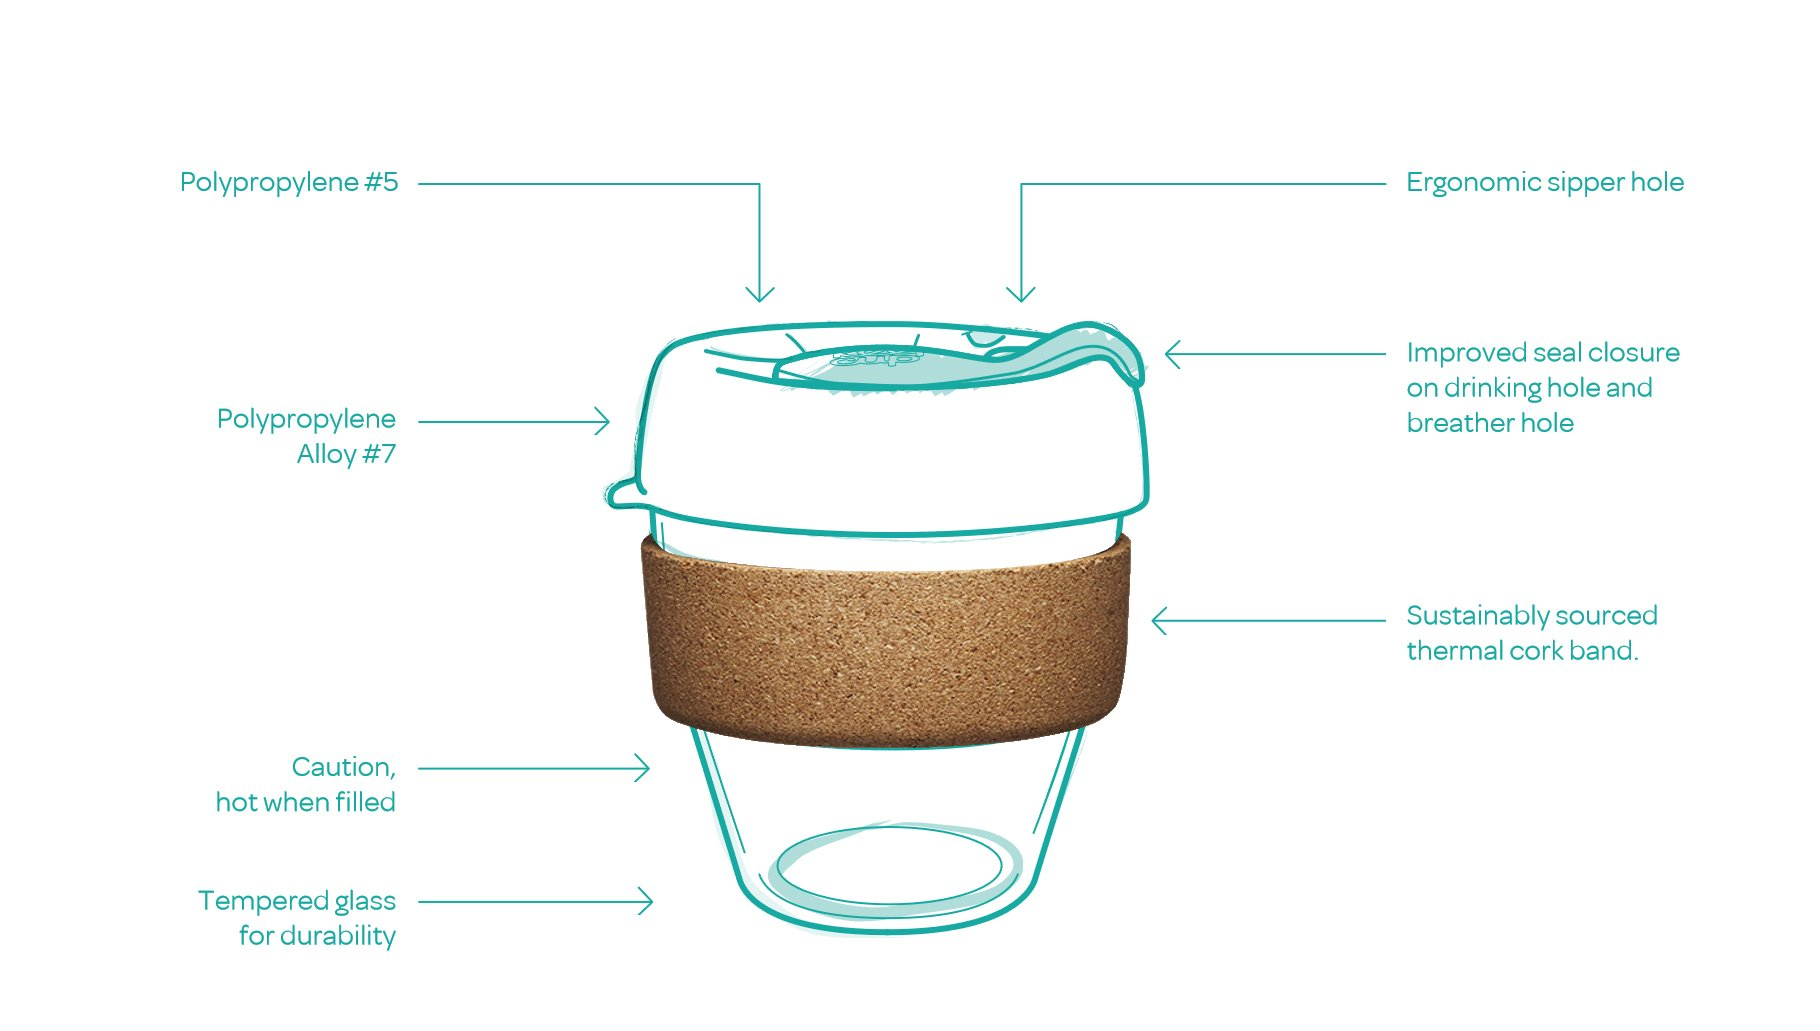 KeepCup Brew Glass Reusable Coffee Cup, 16 oz, Filter by KeepCup (Image #2)